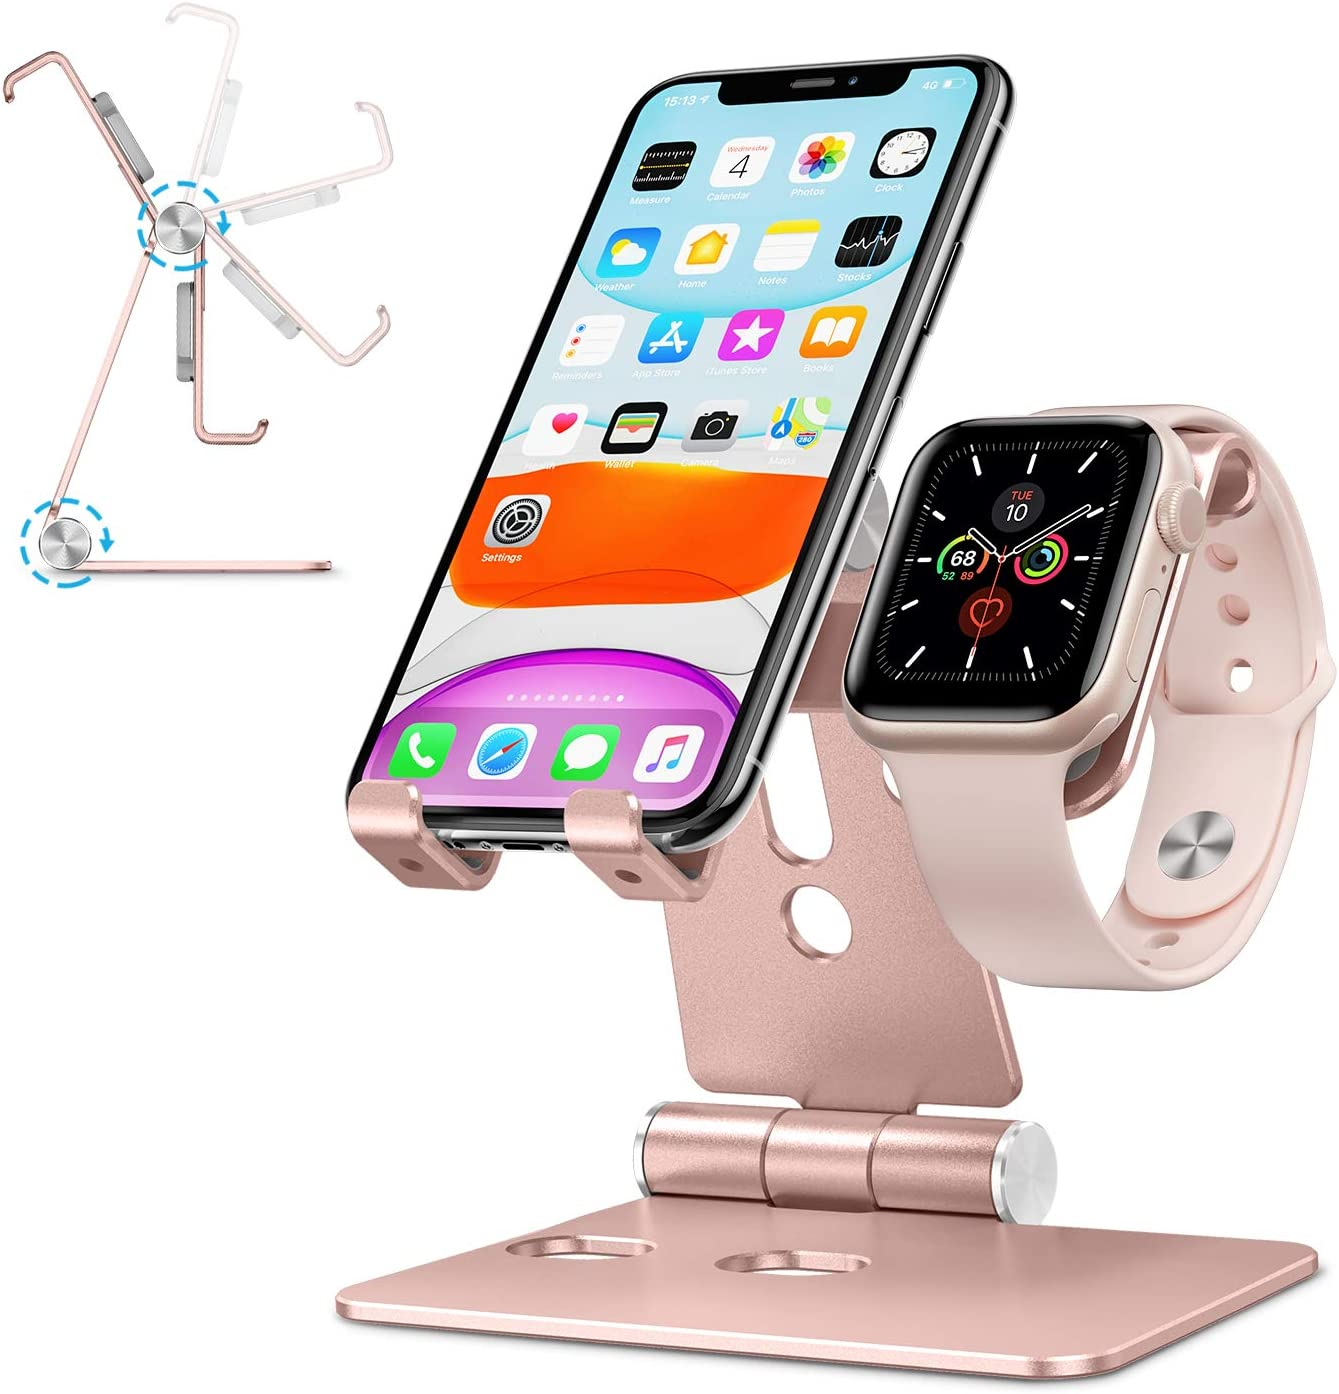 Cell Phone Stand for Apple Watch - OMOTON 2 in 1 Aluminum Foldable Charging Dock Stand for Apple Watch 5/4/3/2/1 and iPhone SE/11/11 Pro/11 Pro Max/XR/Xs/Xs Max (Rose Gold)